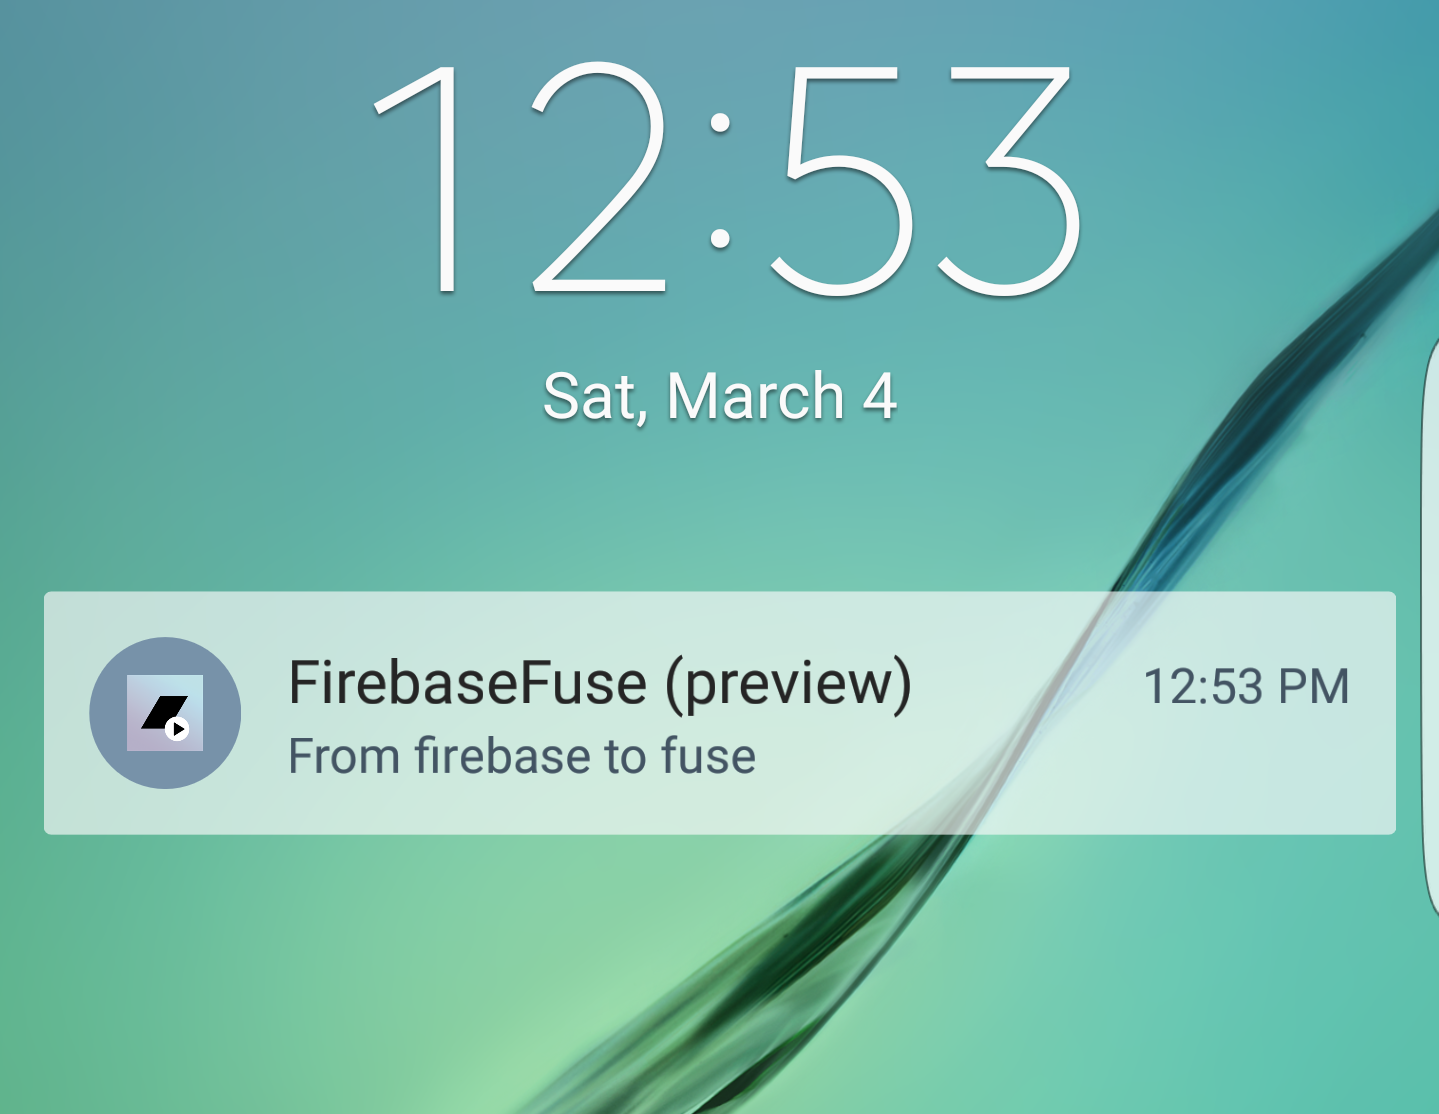 Push Notificacions with Google Firebase Notifications - How